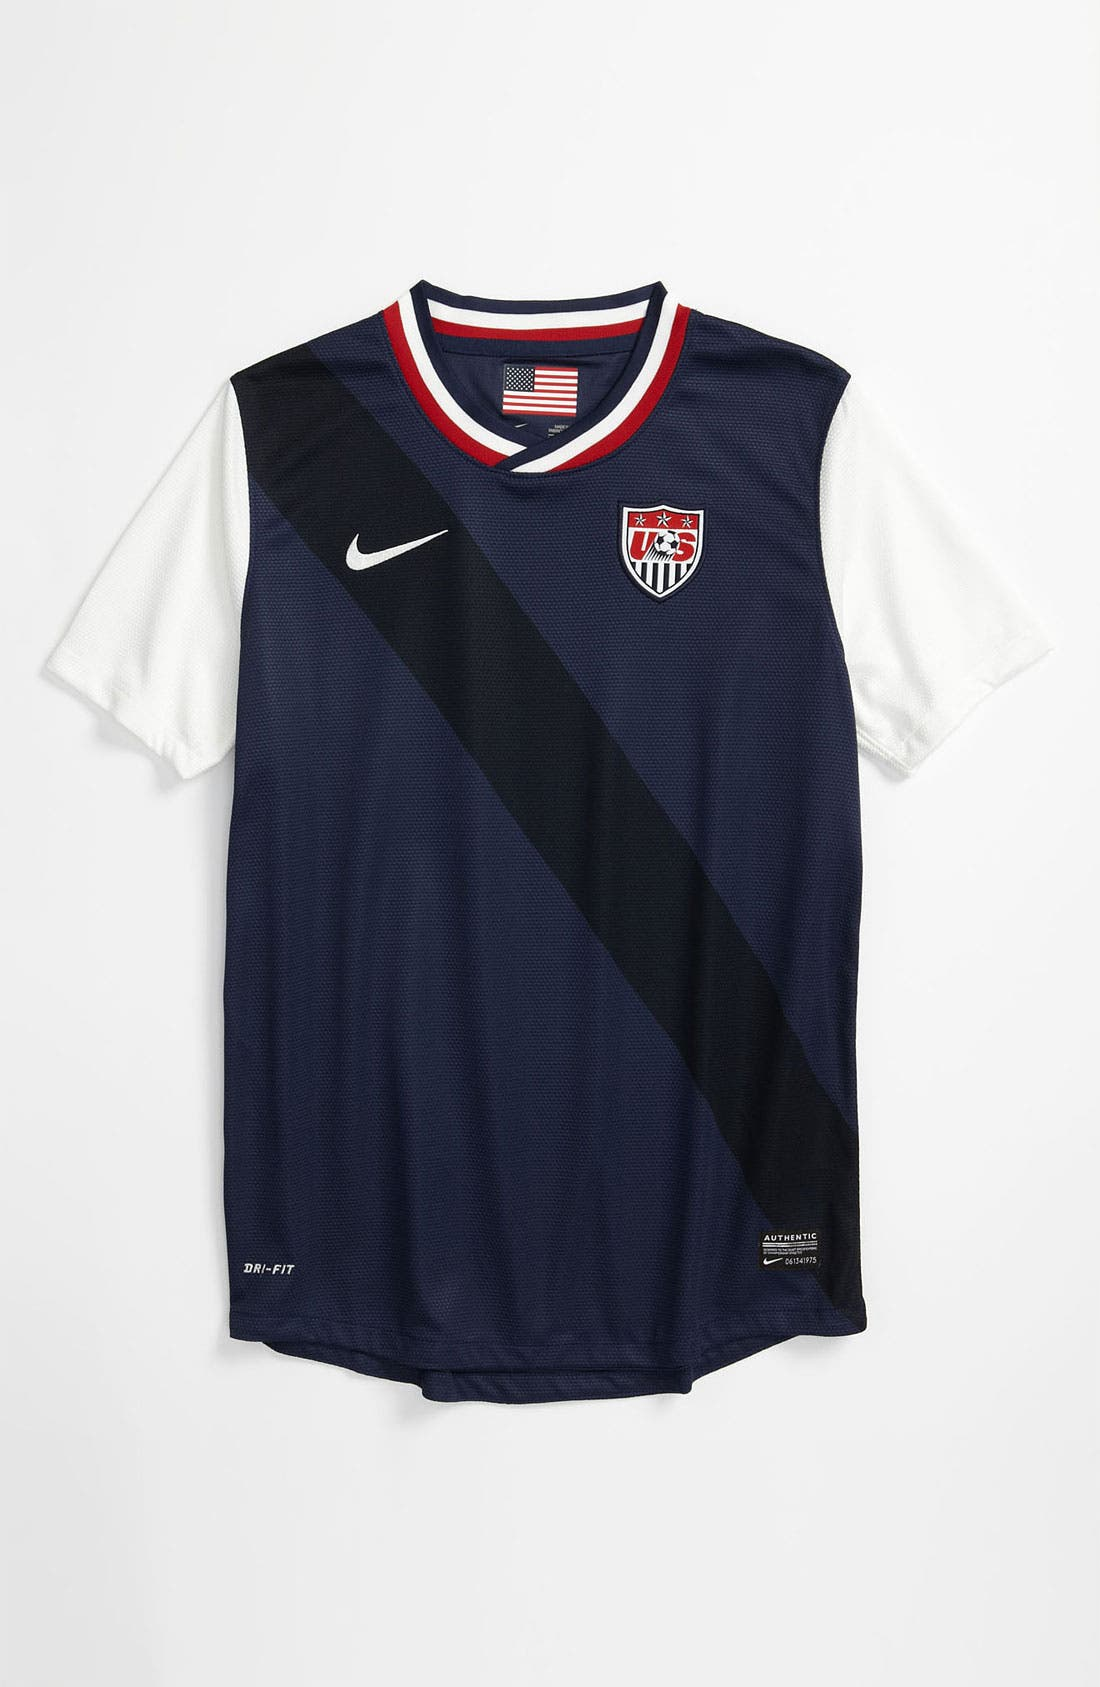 Alternate Image 1 Selected - Nike 'USA Away' Dri-FIT Jersey (Big Boys)